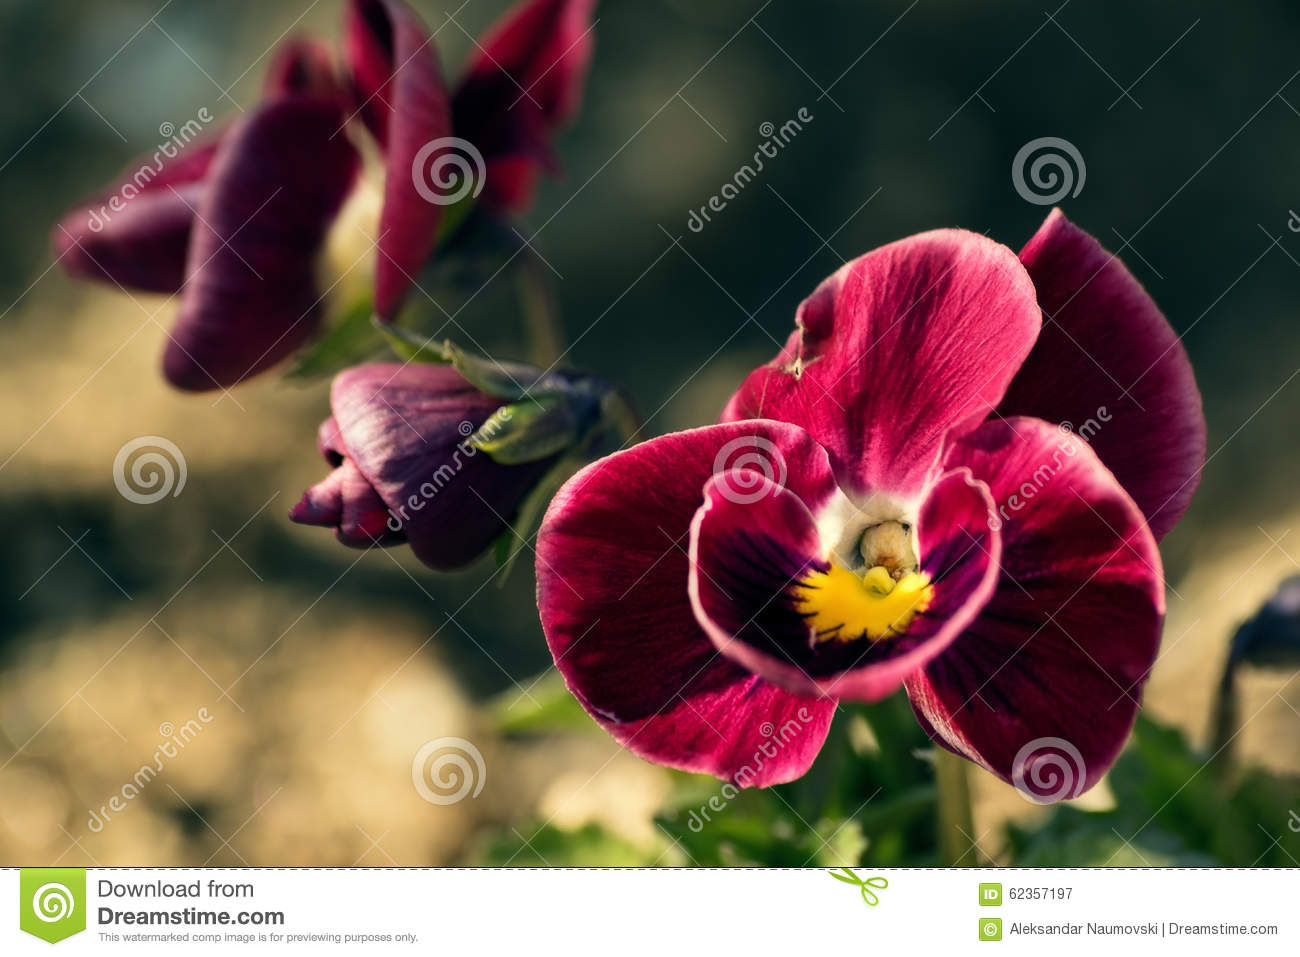 Red Violet Flower Stock Photo - Image: 62357197